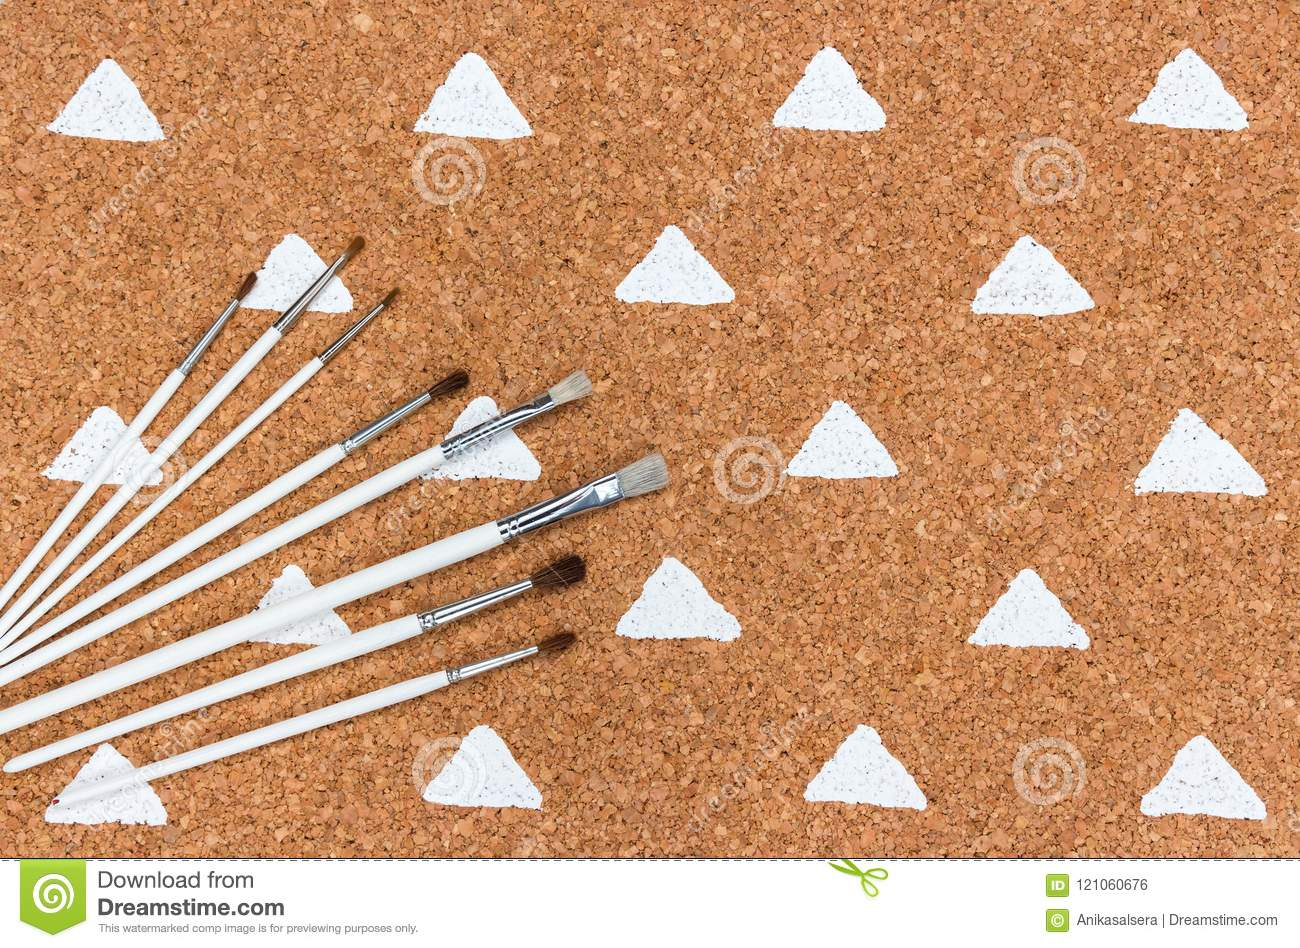 Paintbrushes on cork background with painted triangles